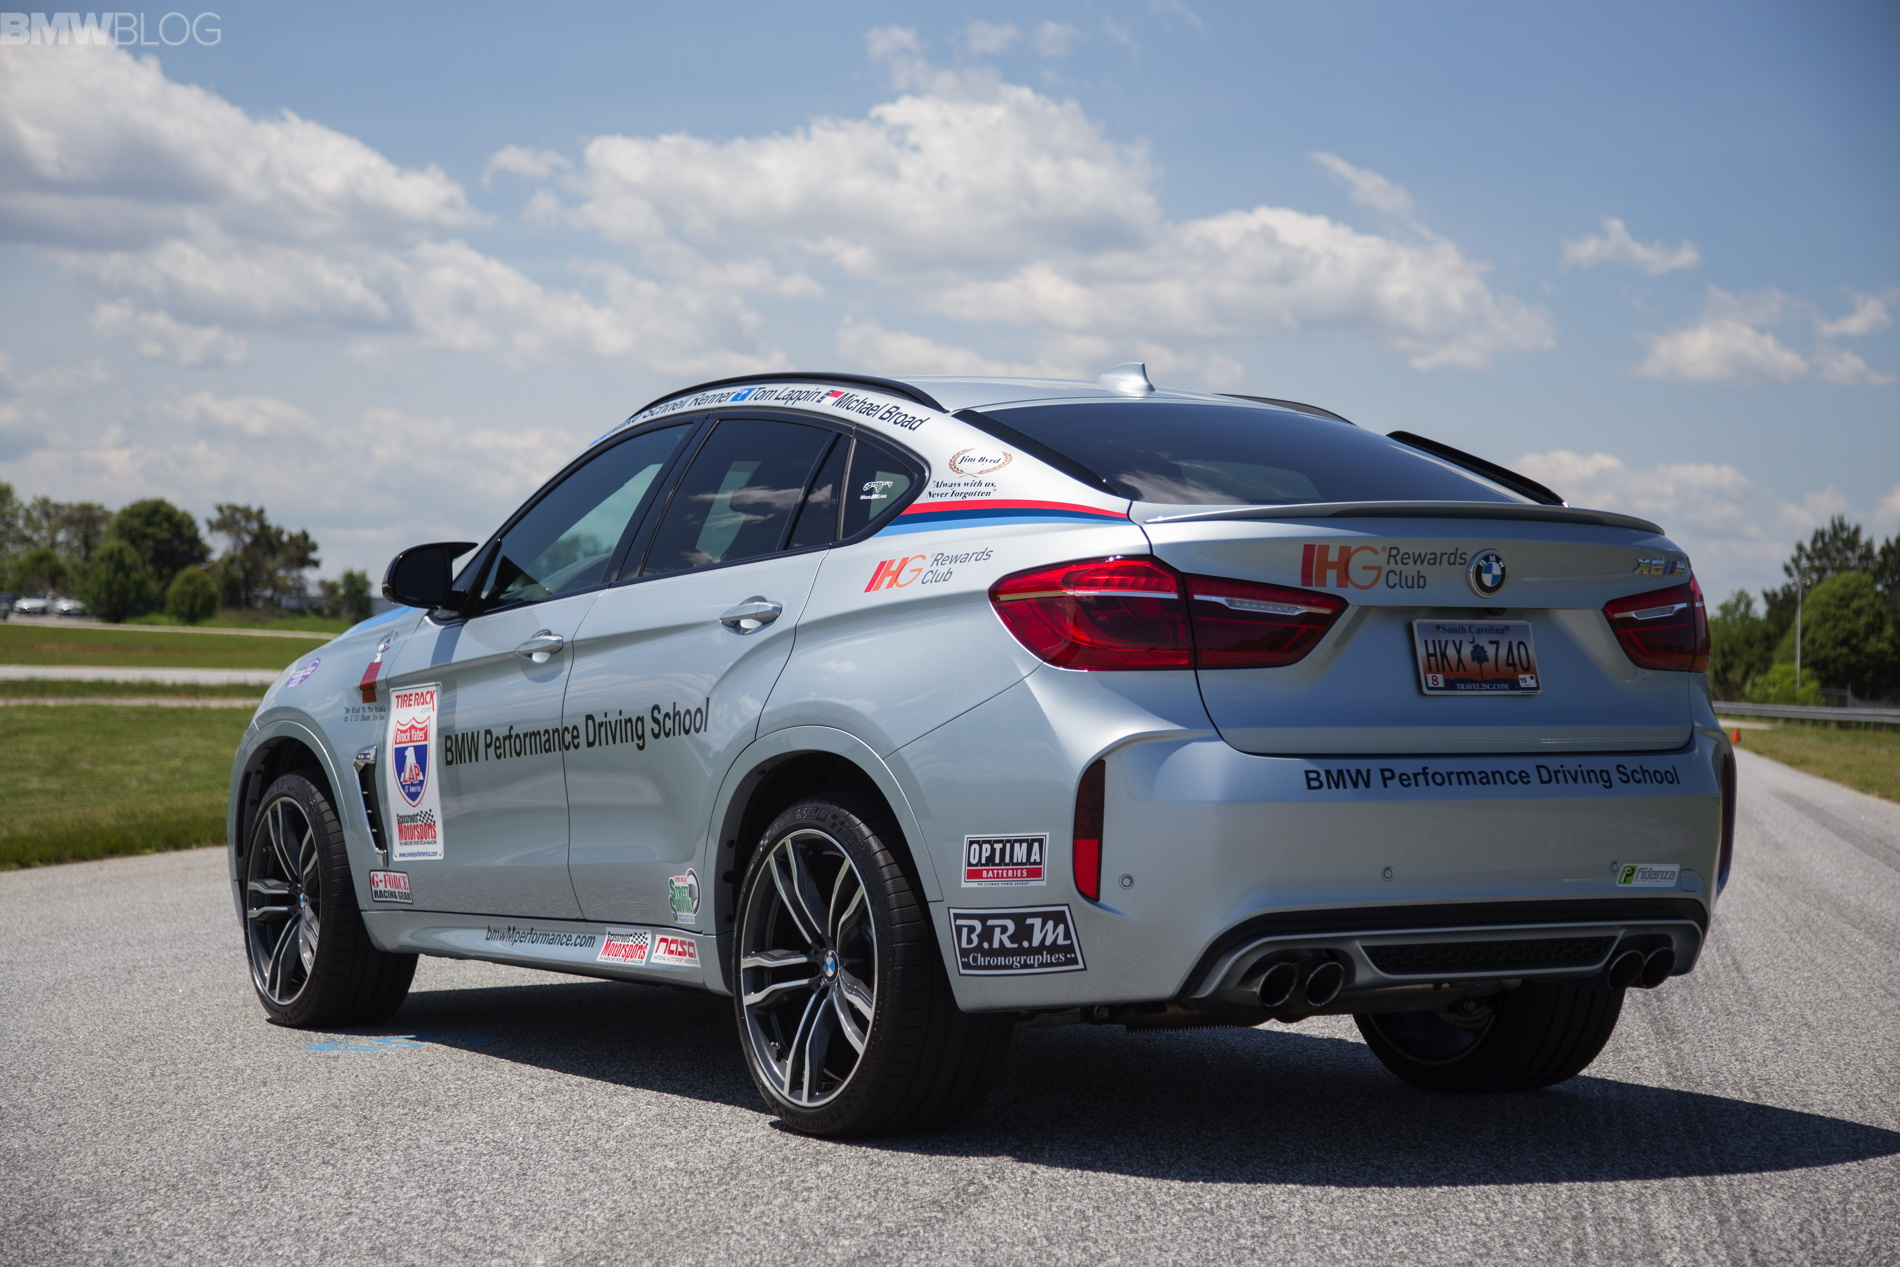 2015 Bmw X6 M To Compete In 2015 One Lap Of America